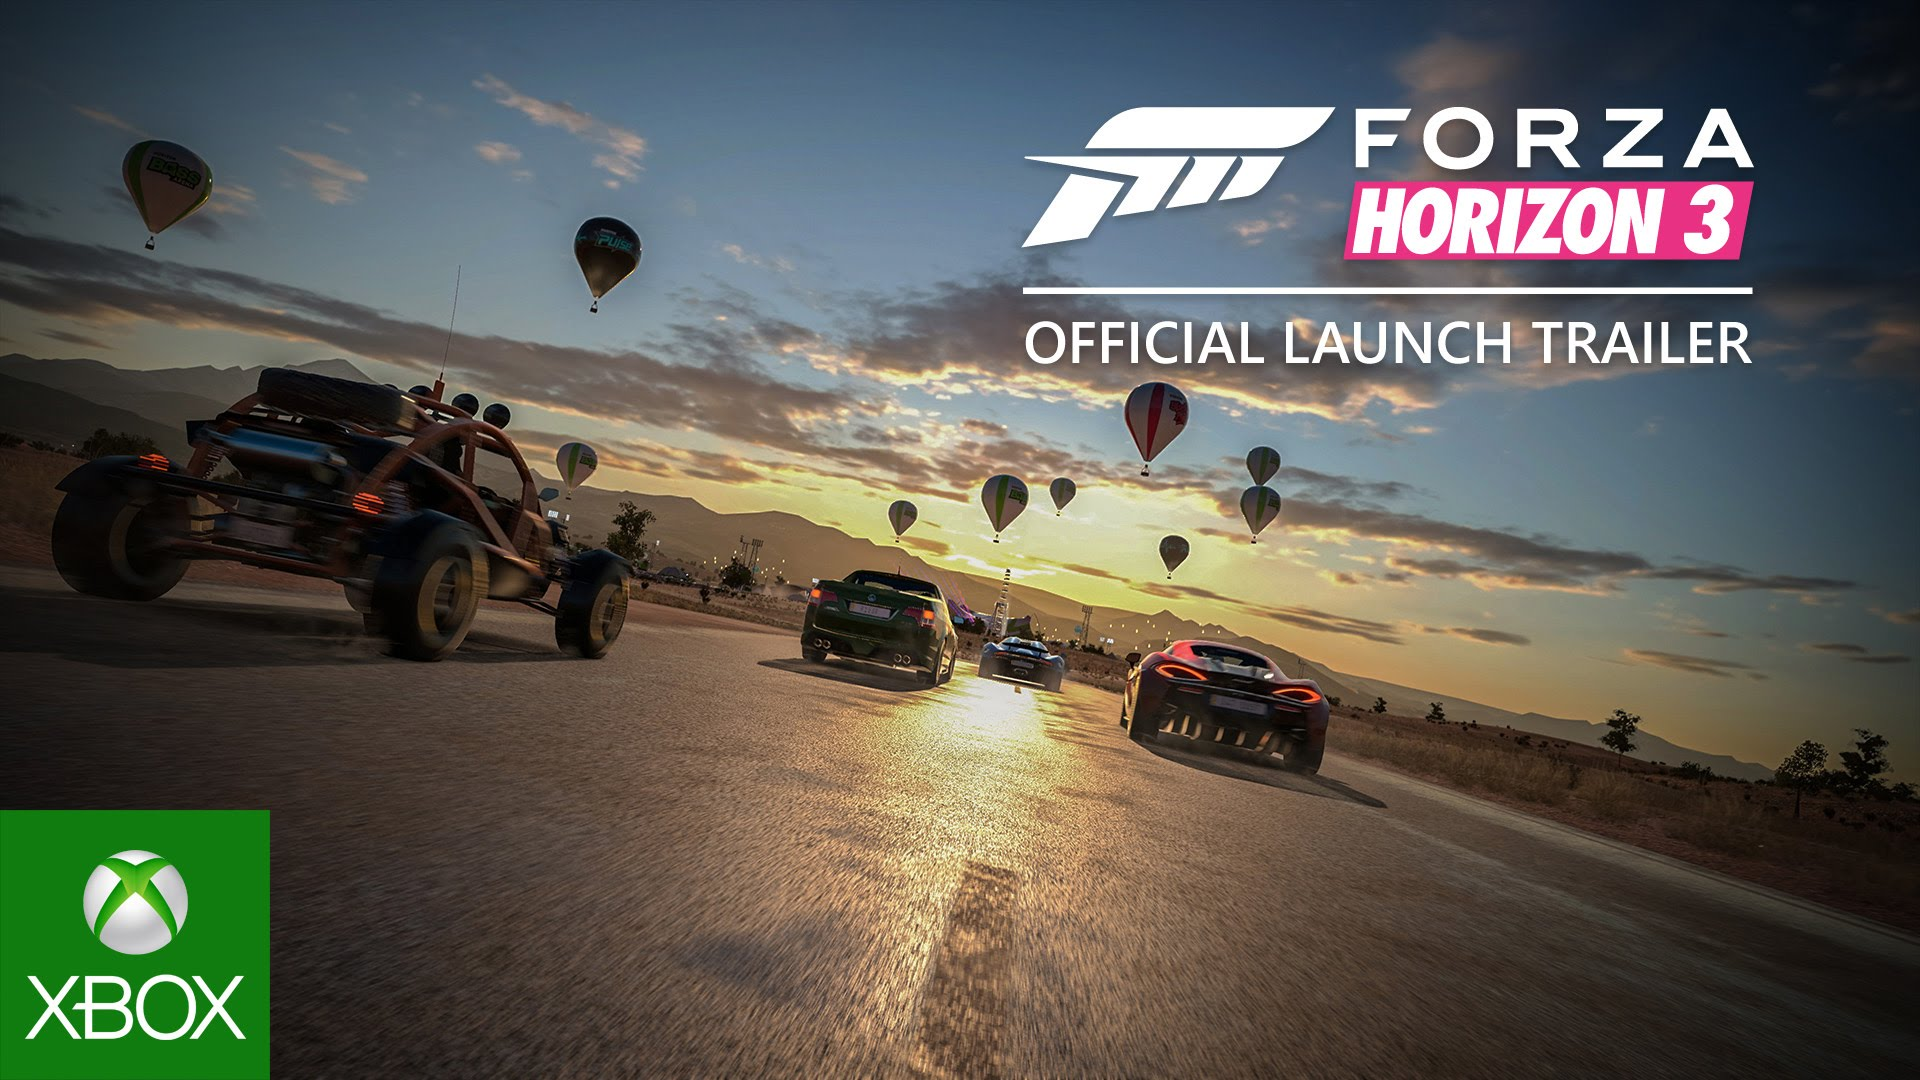 Forza Horizon 3 Official Launch Trailer